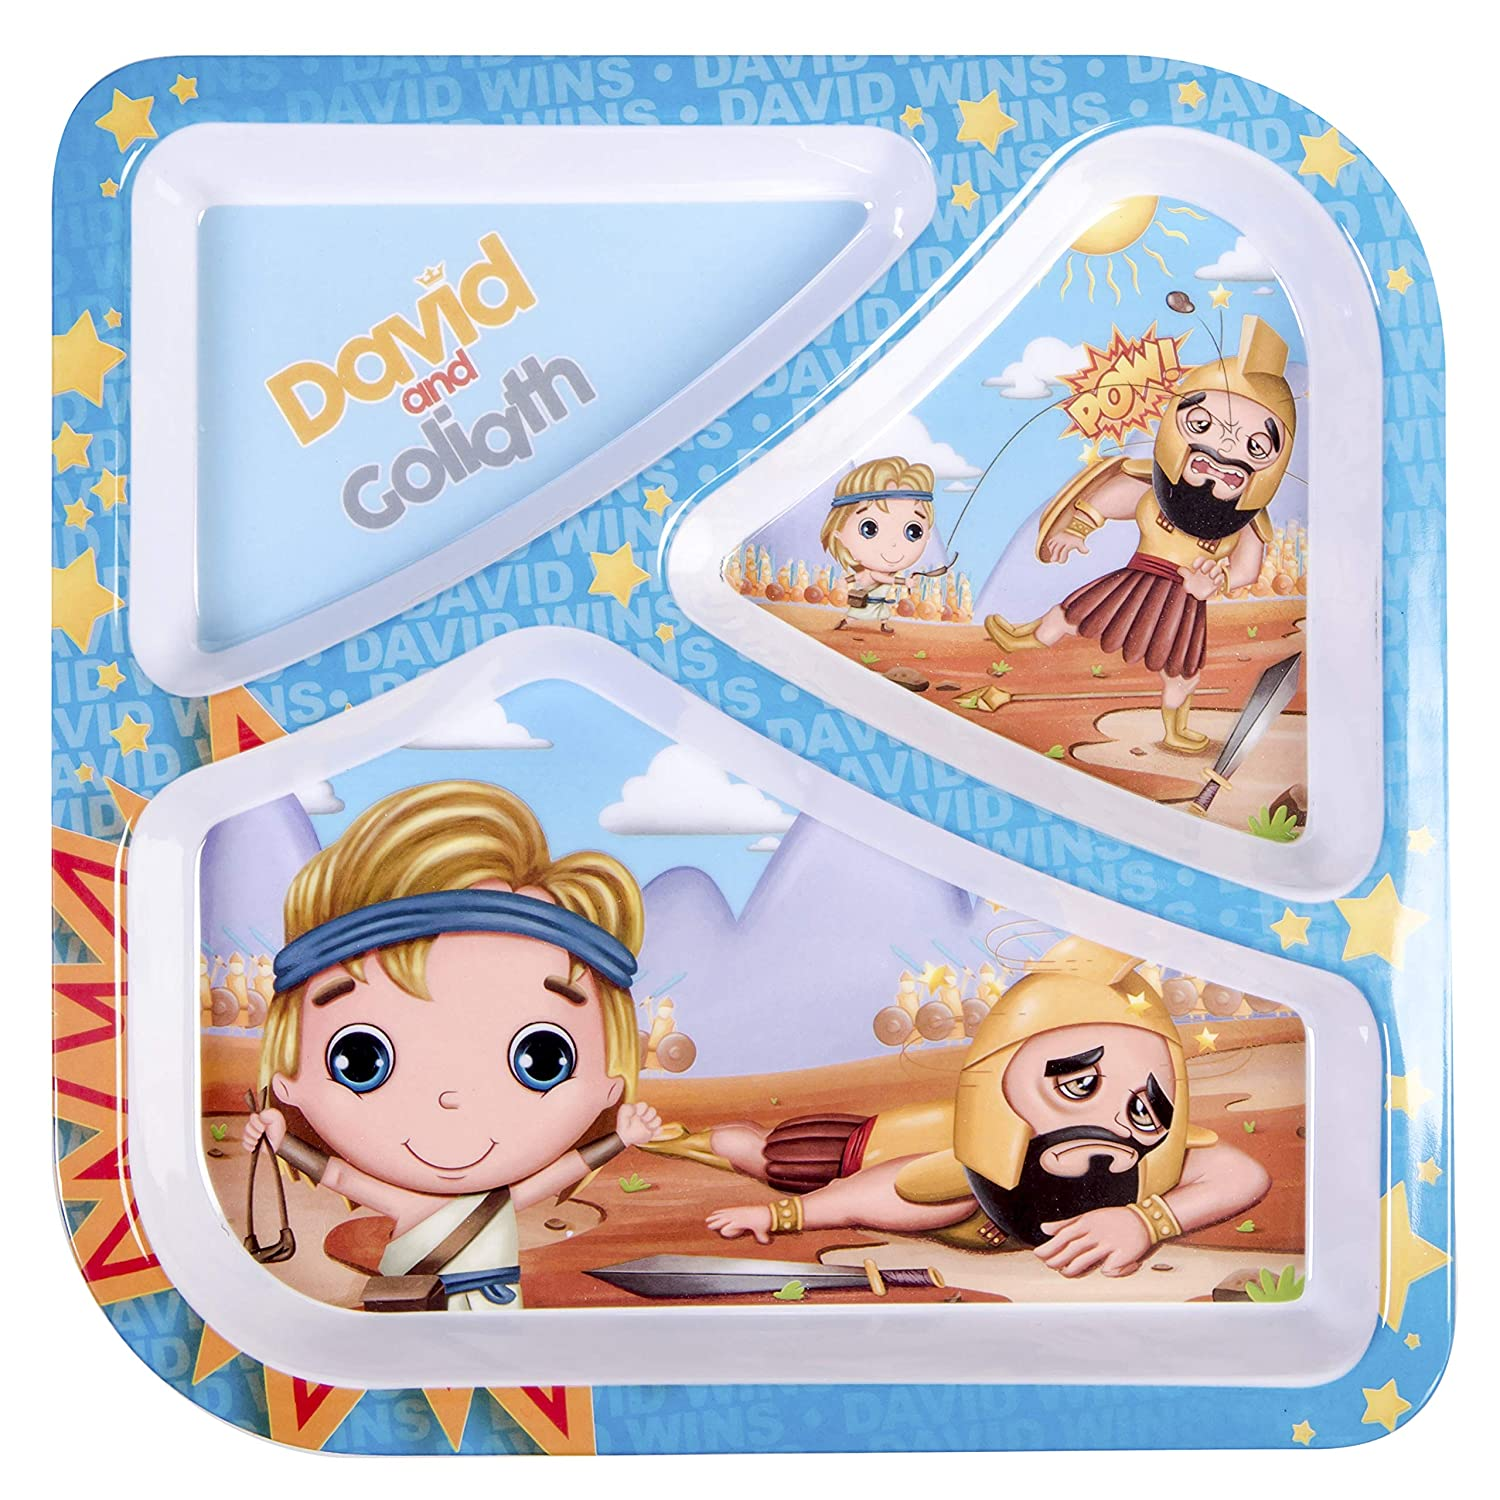 He Loves Me Kids and Goliath 3-Section Divided Plate for Kids BPA-Free Non-Toxic Melamine Durable Snack Plate Dishwasher Safe Child Feeding Dinner Plate